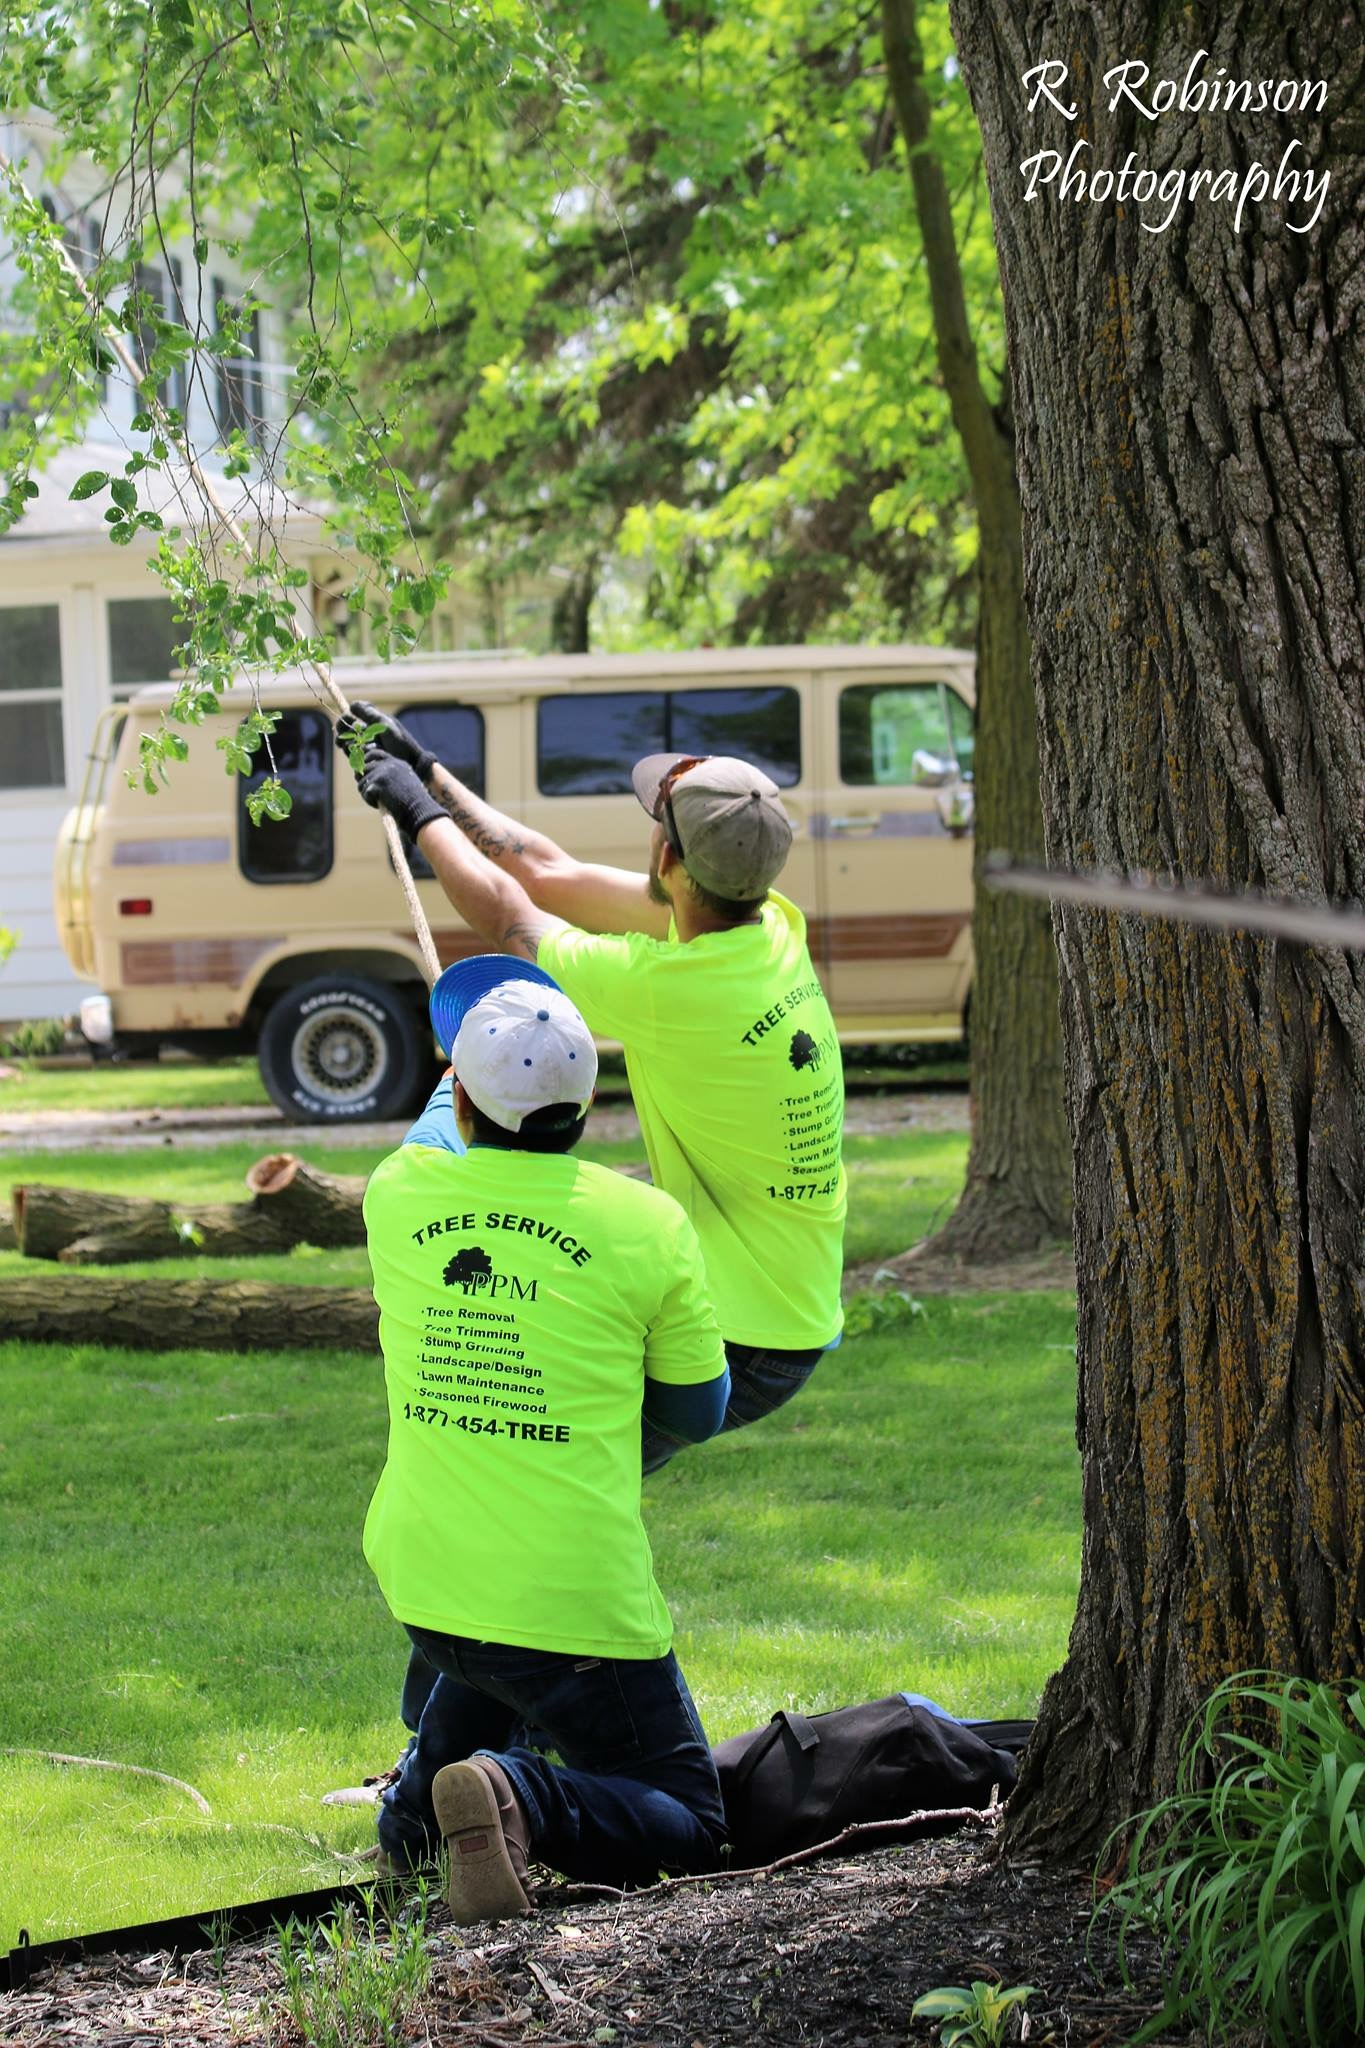 Cable bracing trees is an art, and our team of professionals at PPM Tree Service & Arbor Care loves to do it. Let us set up your tree brace properly for the best results.